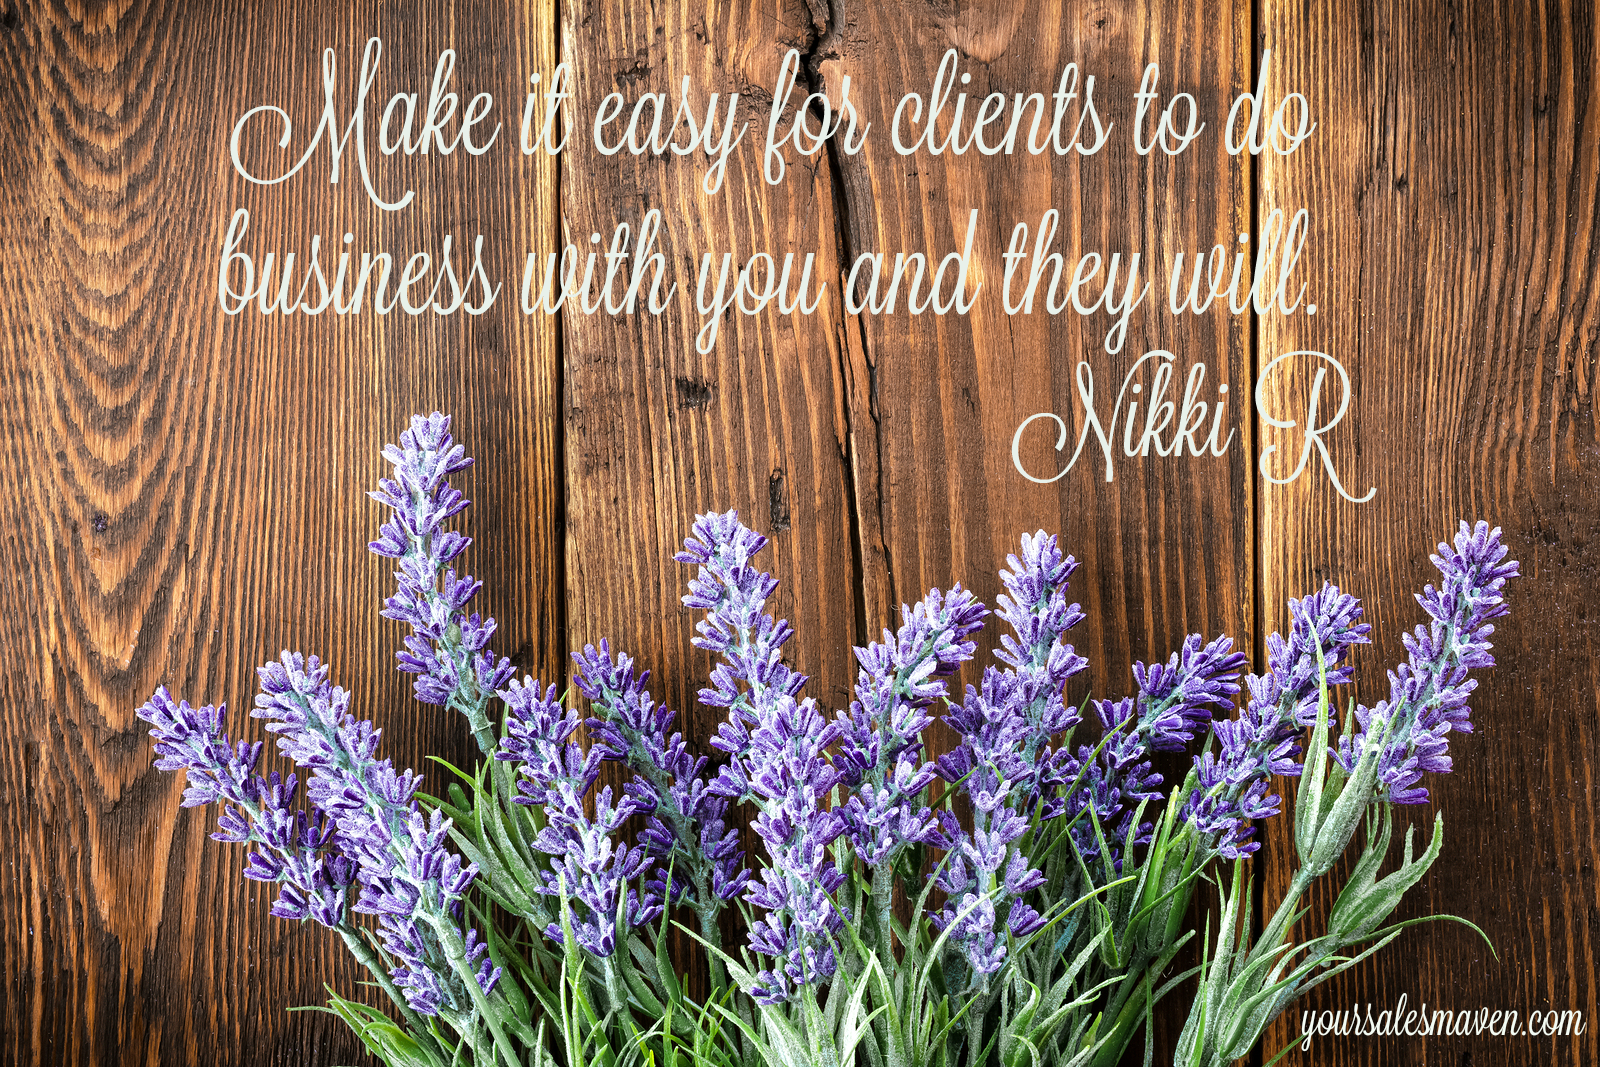 Sales Maven Blog, Nikki Rausch, Sales Tips, Client Relationships